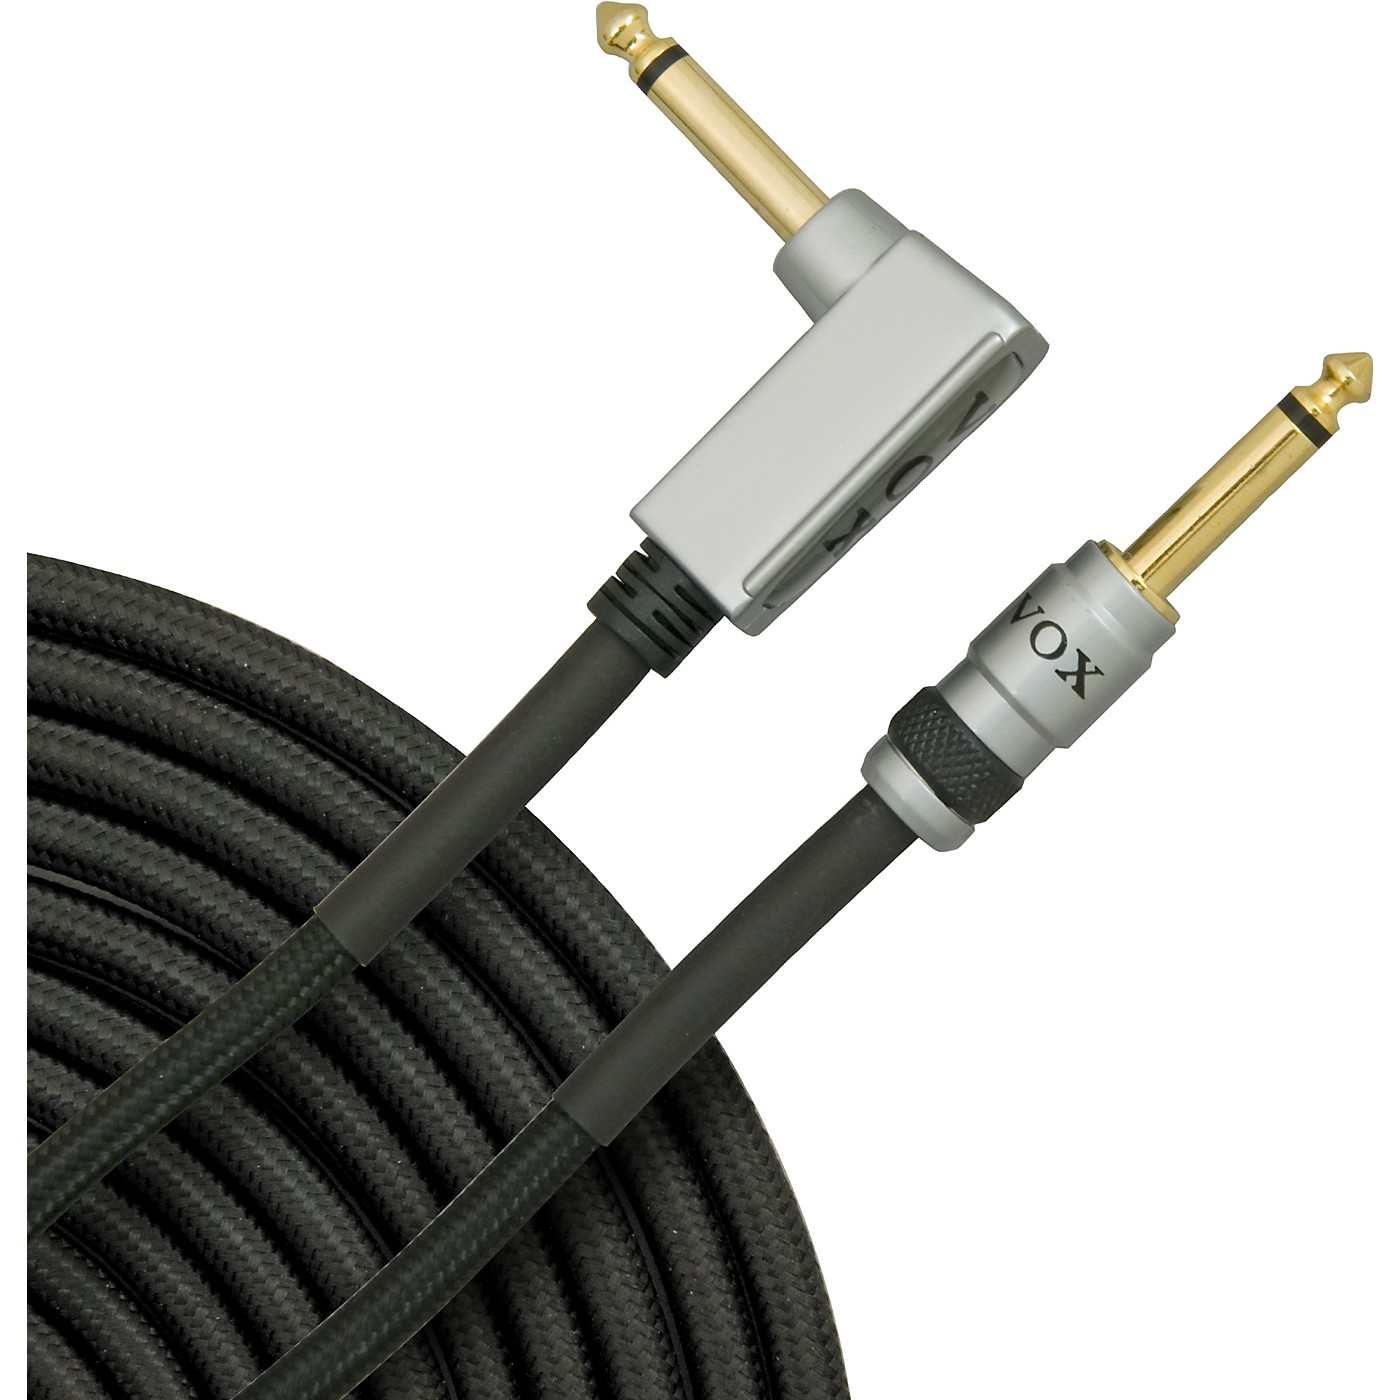 Vox Professional Guitar Cable thumbnail